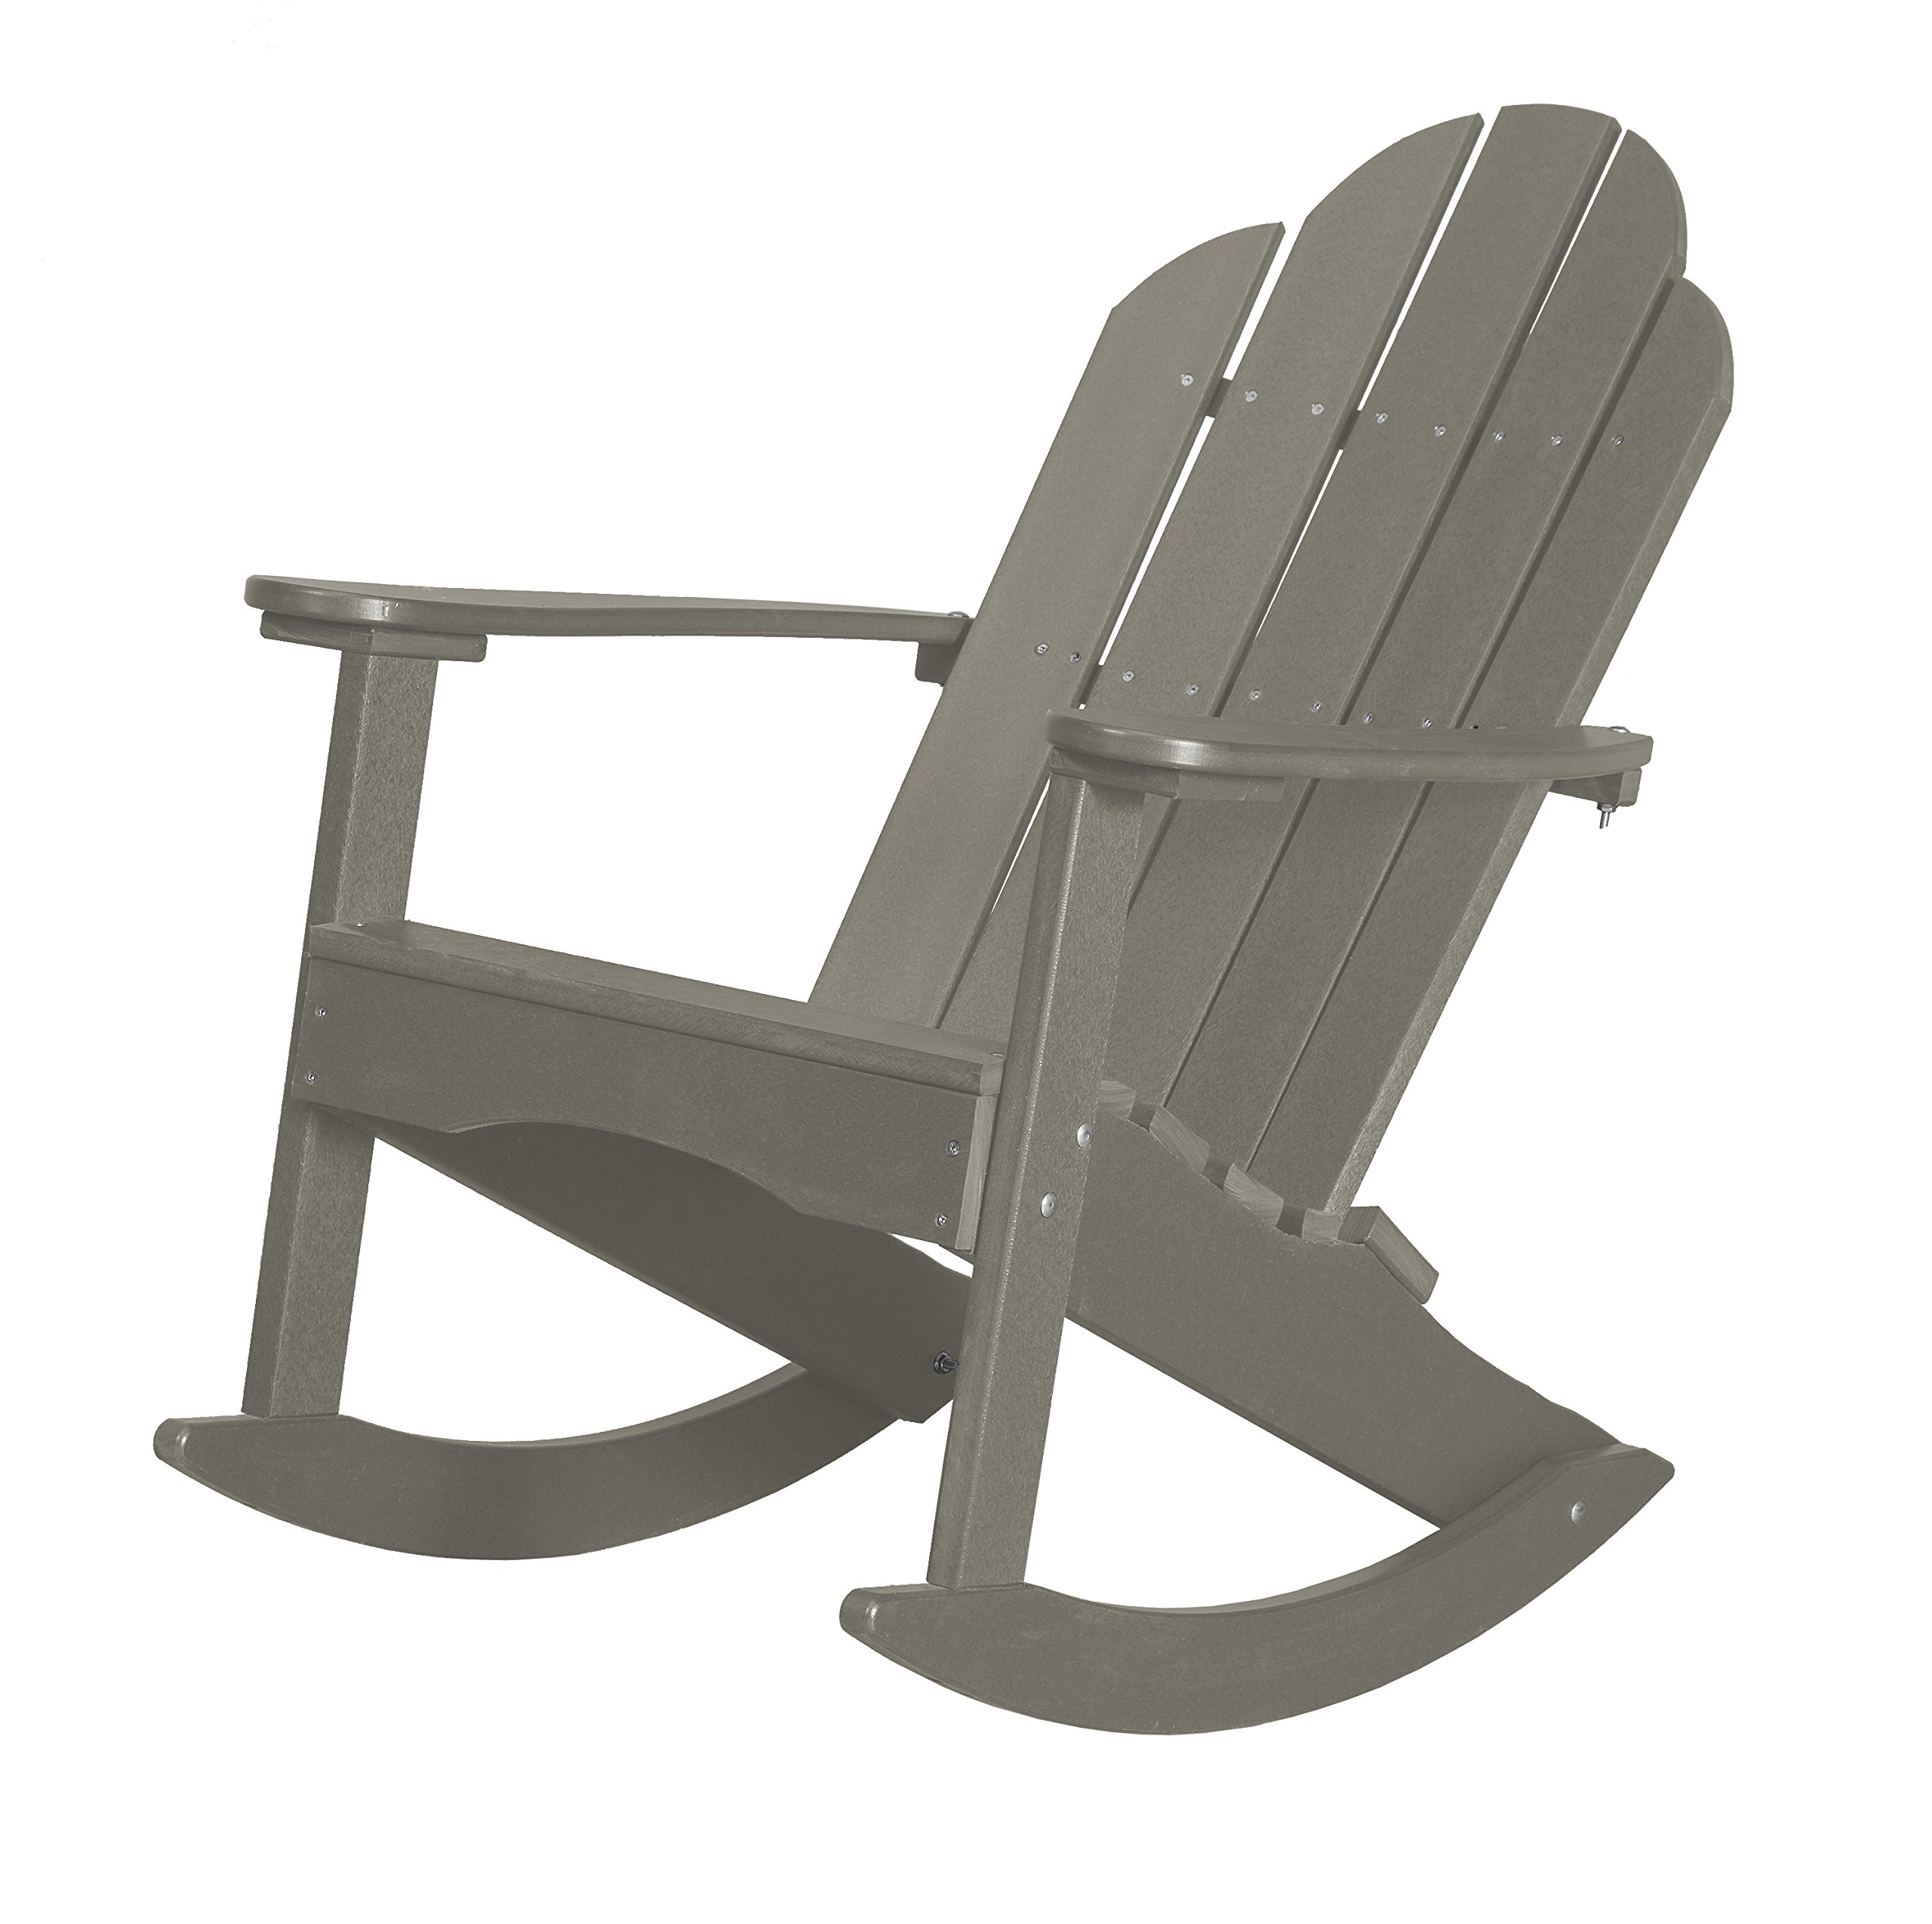 Little Cottage Company LCC-215 Classic Adirondack Rocker, Light Gray